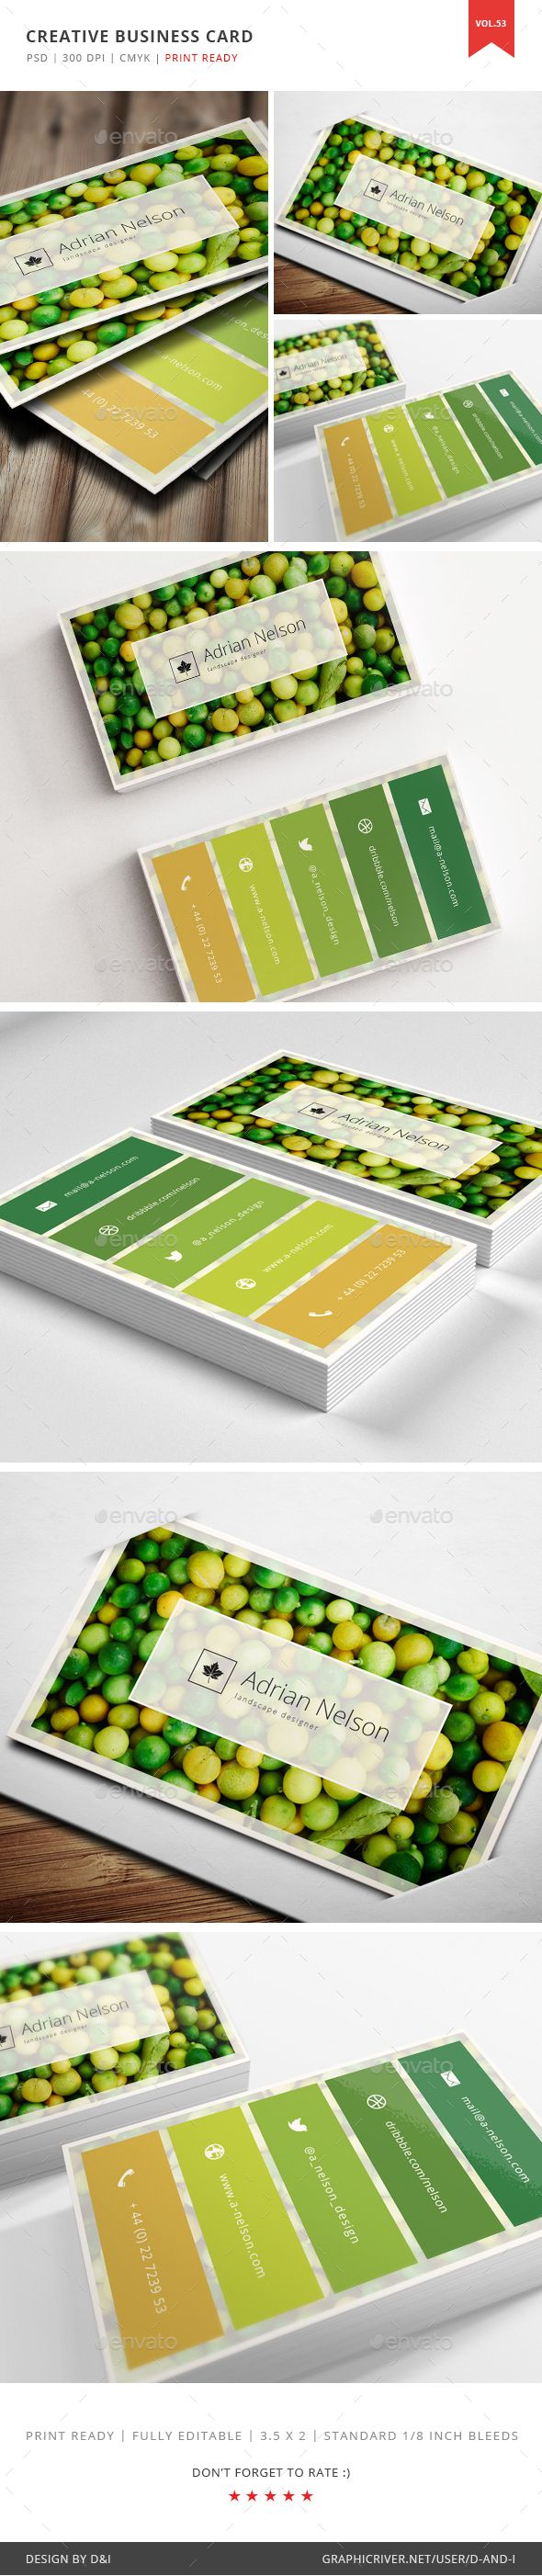 Creative Landscape Designer Business Card Template PSD. Download here: http://graphicriver.net/item/creative-landscape-designer-business-card-vol-53/16288710?ref=ksioks